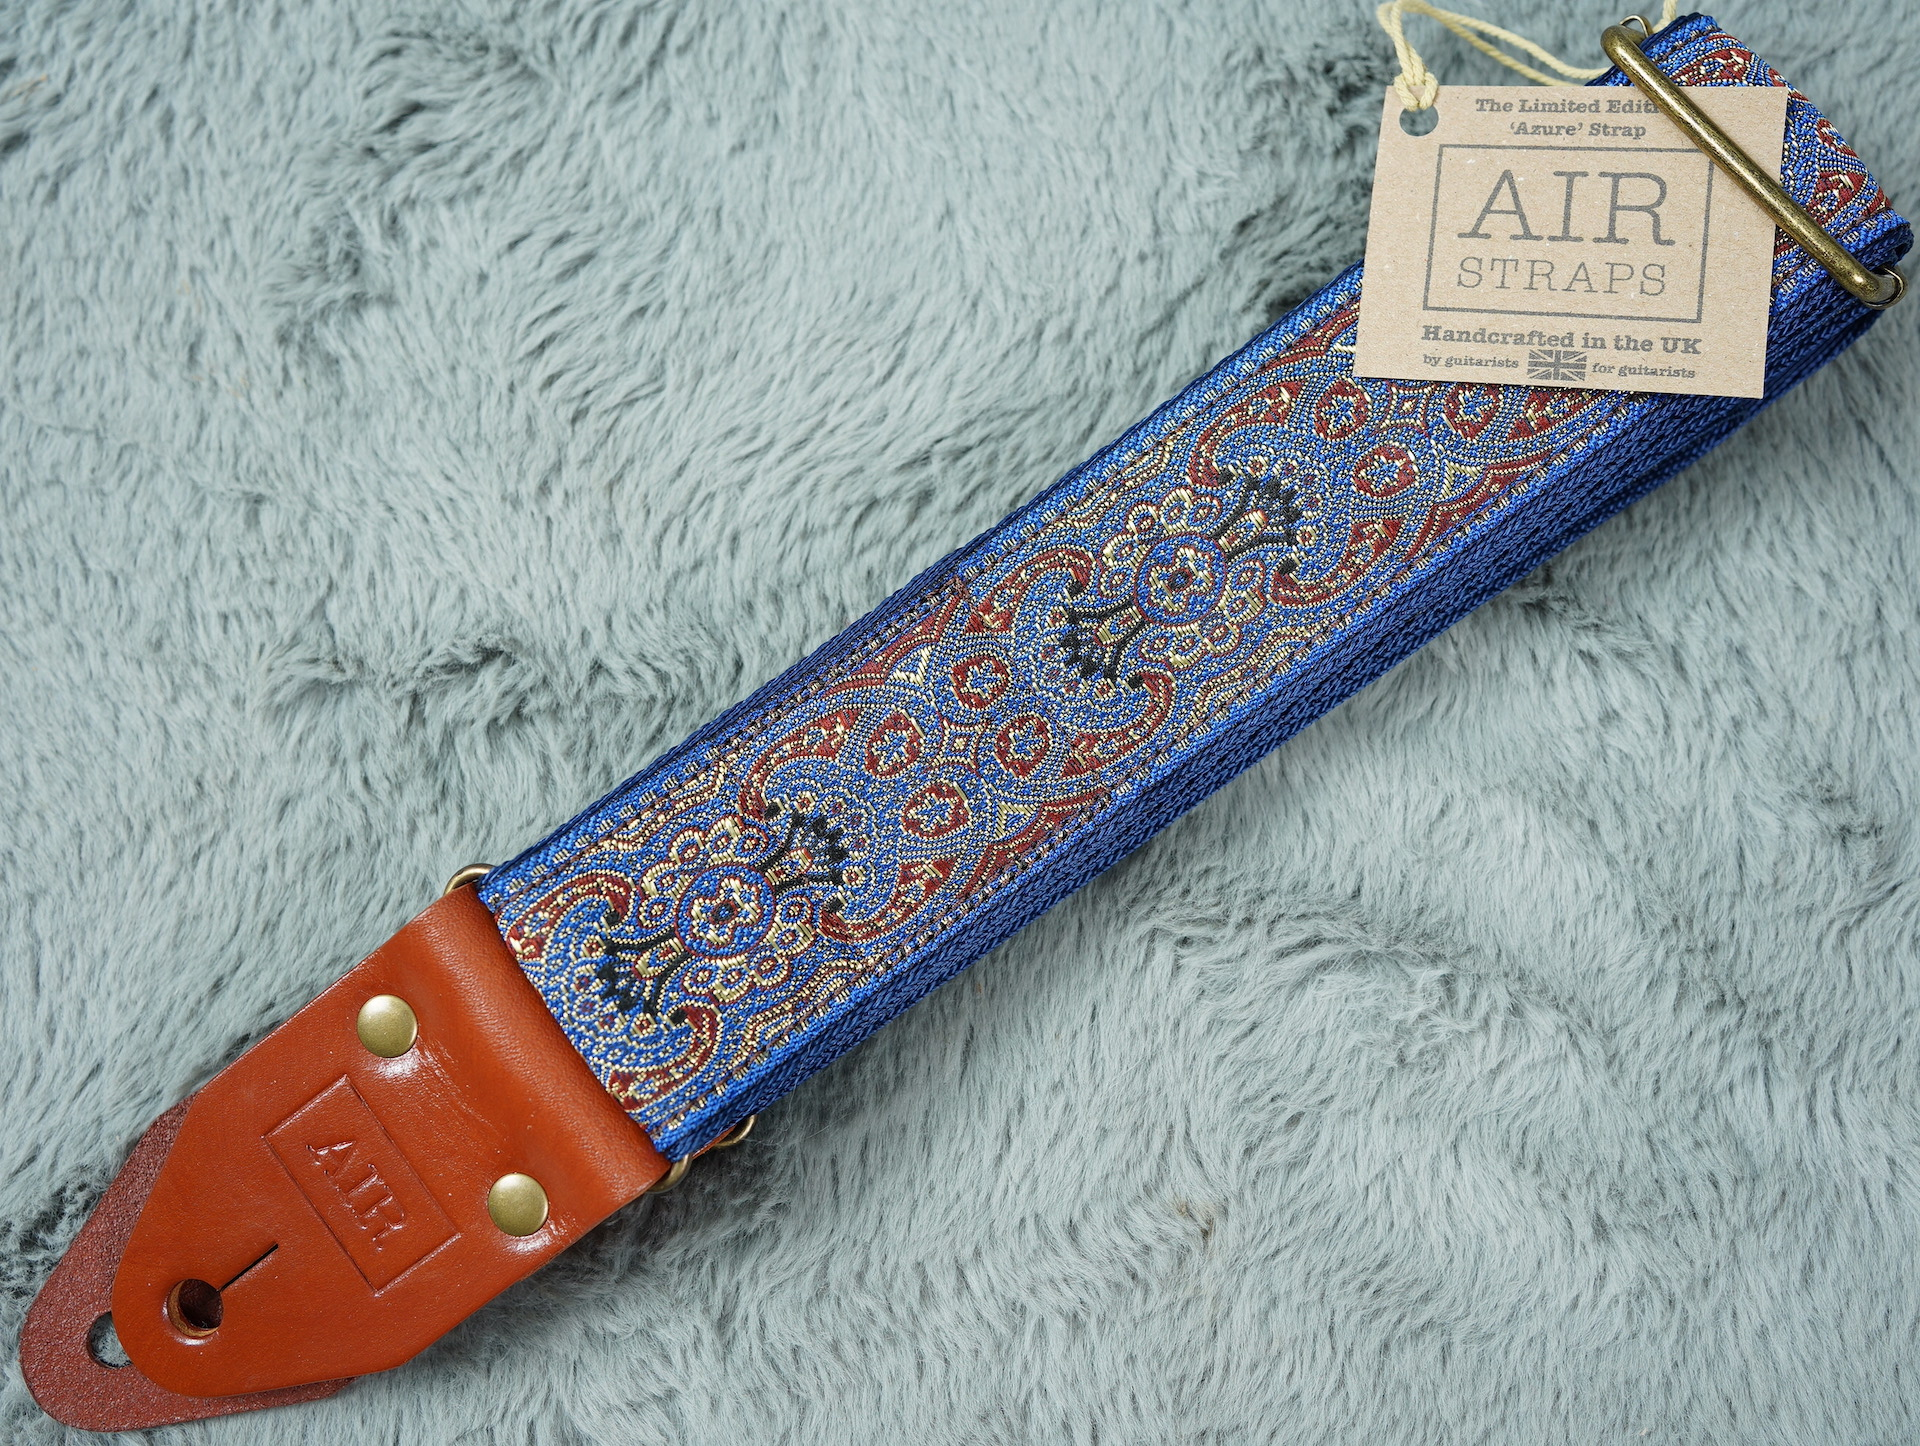 Air Straps Limited Edition 'Azure' Guitar Strap - Free Shipping!